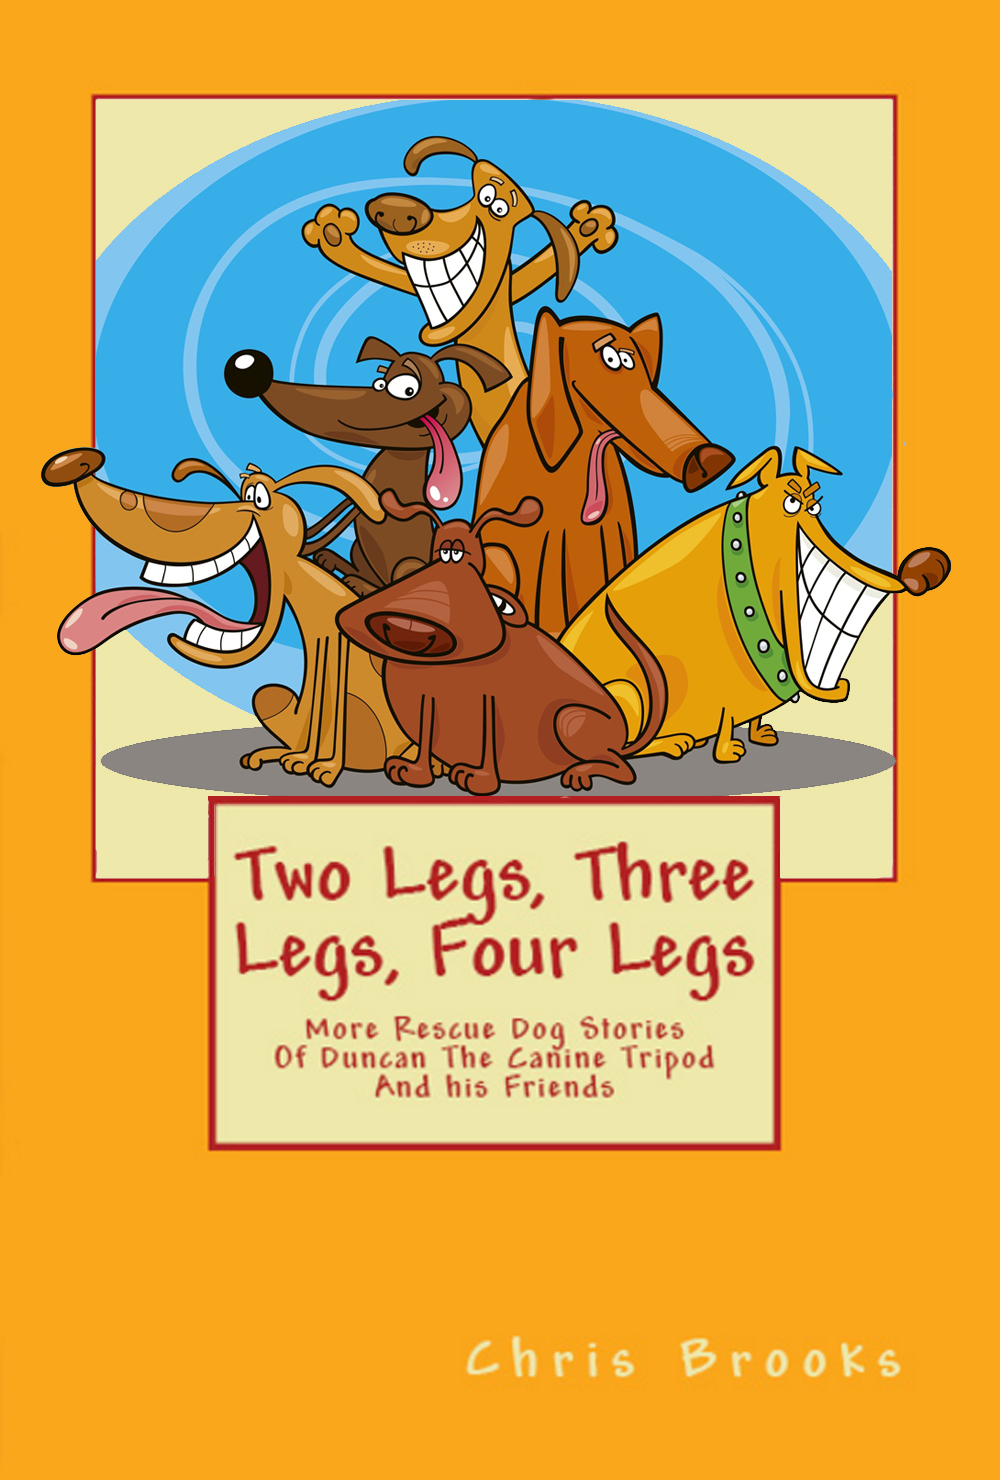 Book Cover. Two Legs, Three Legs, Four Legs.